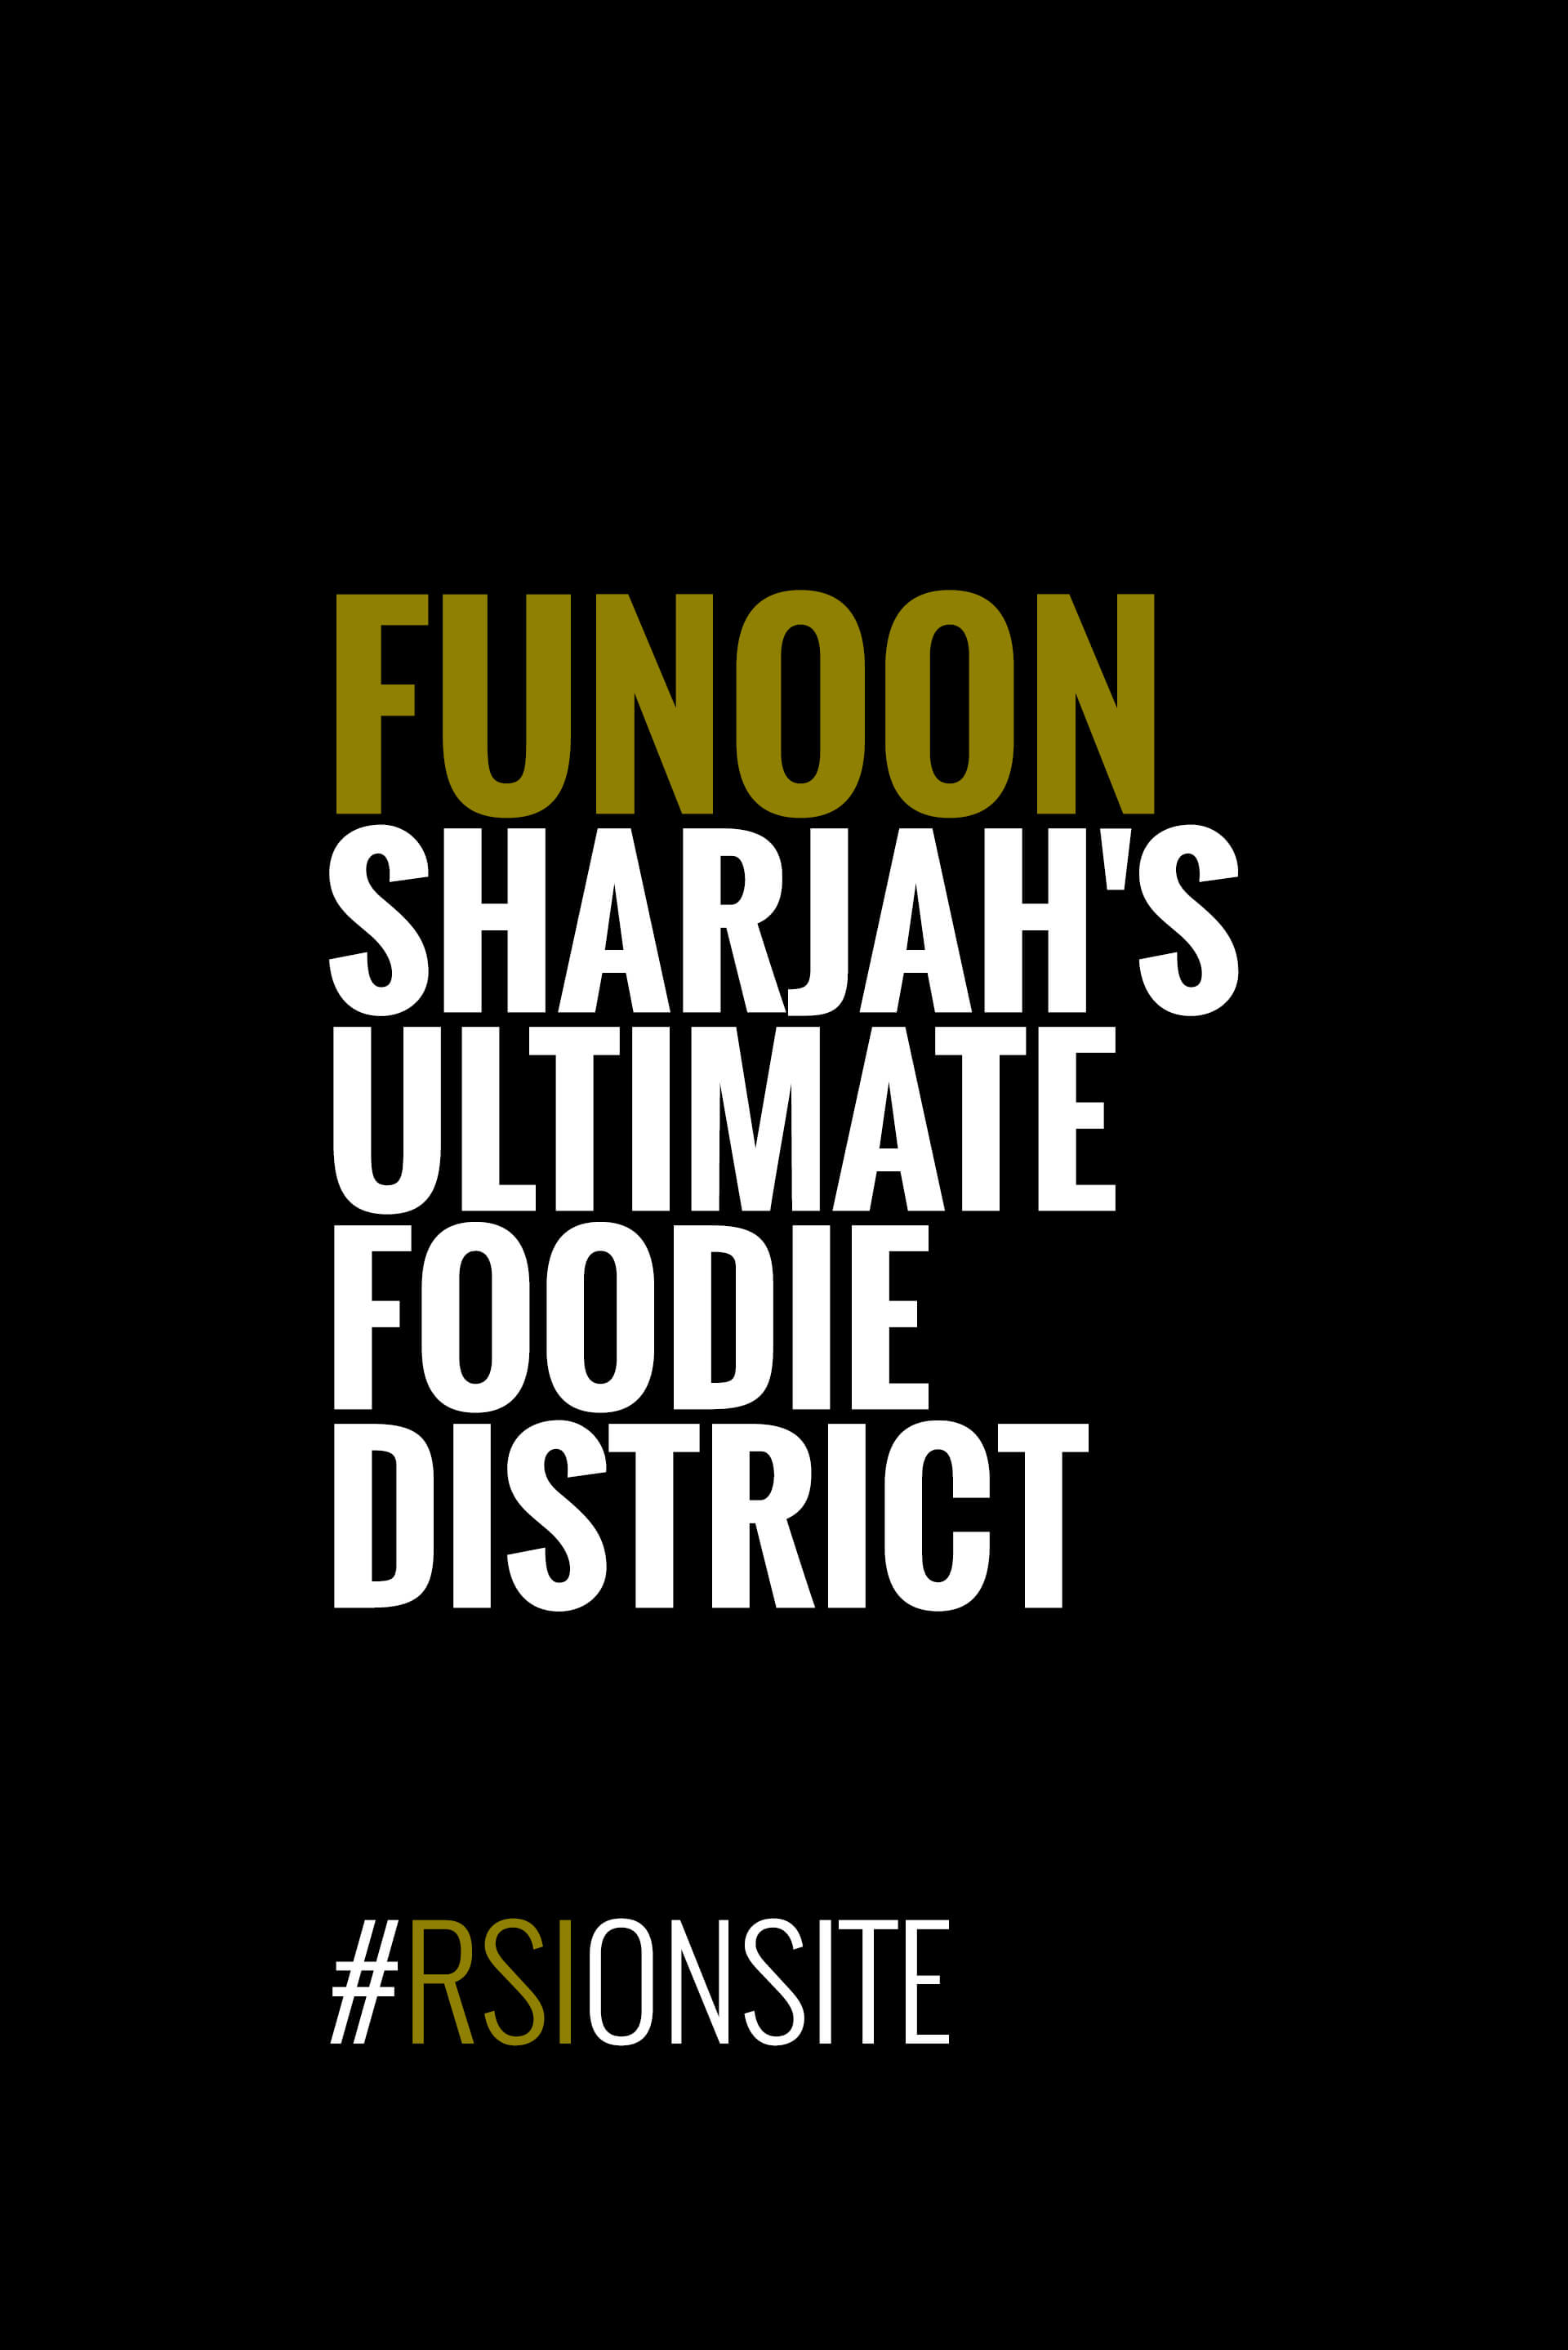 Funoon - Sharjah's ultimate foodie district